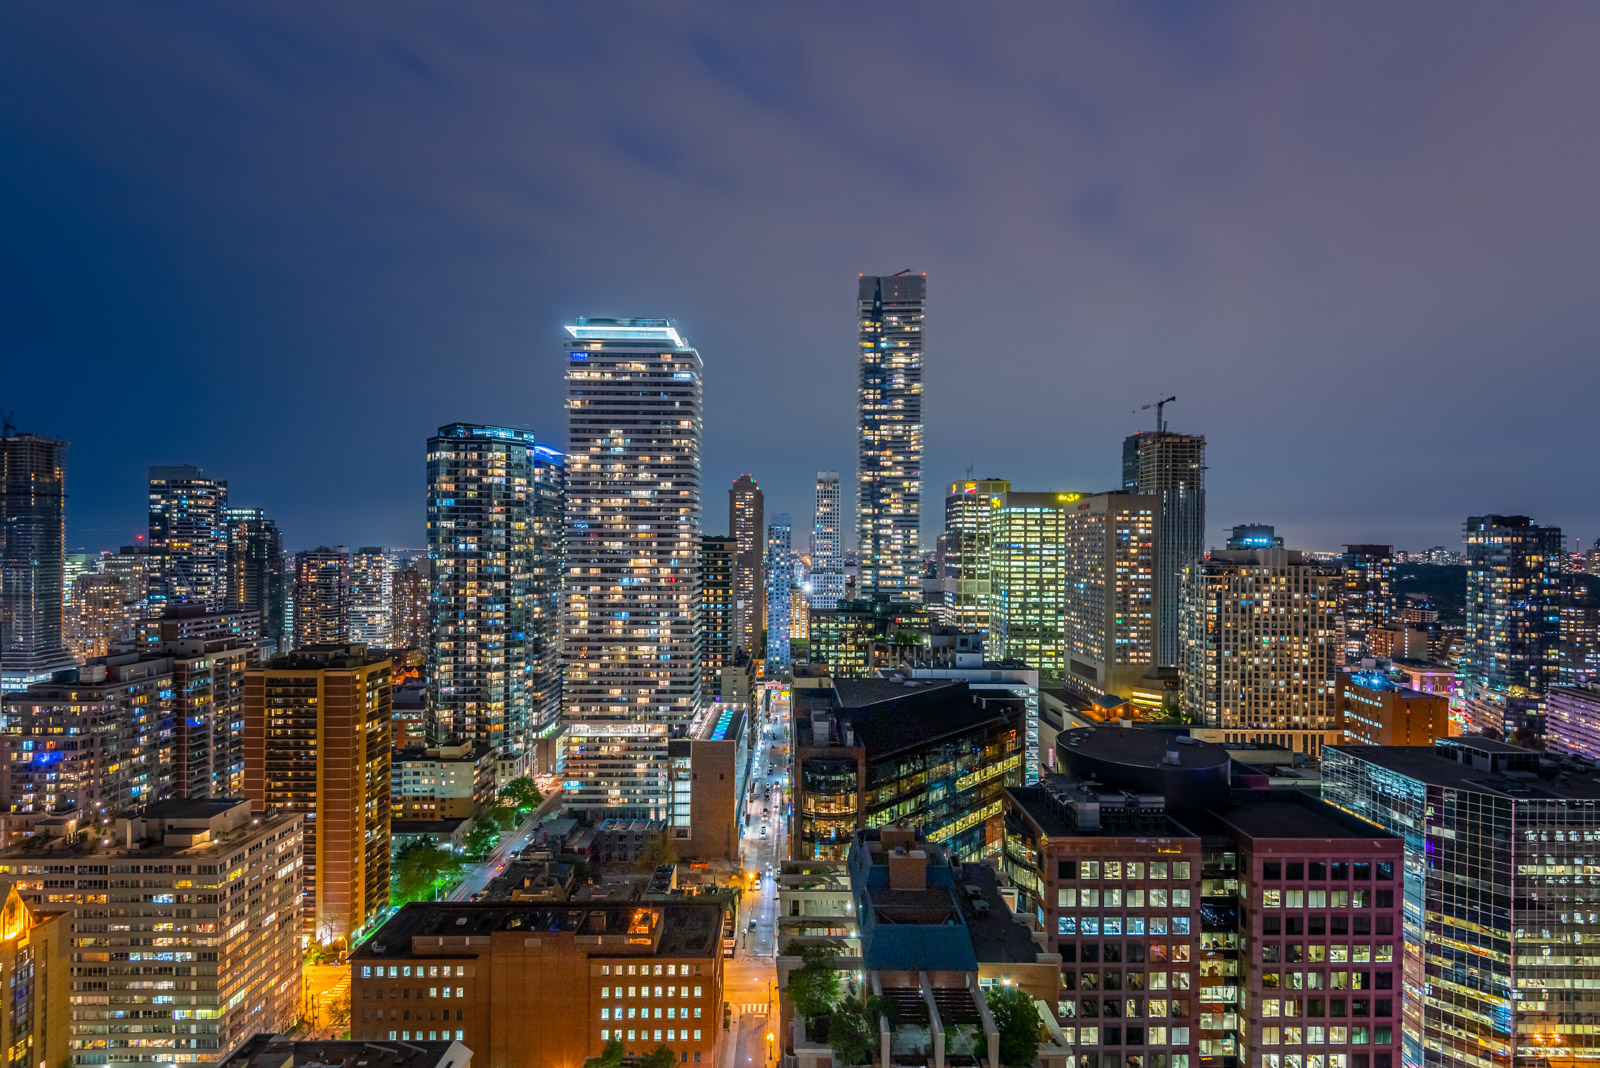 Night view of Toronto from balcony of 28 Ted Rogers Way Unit 3609.